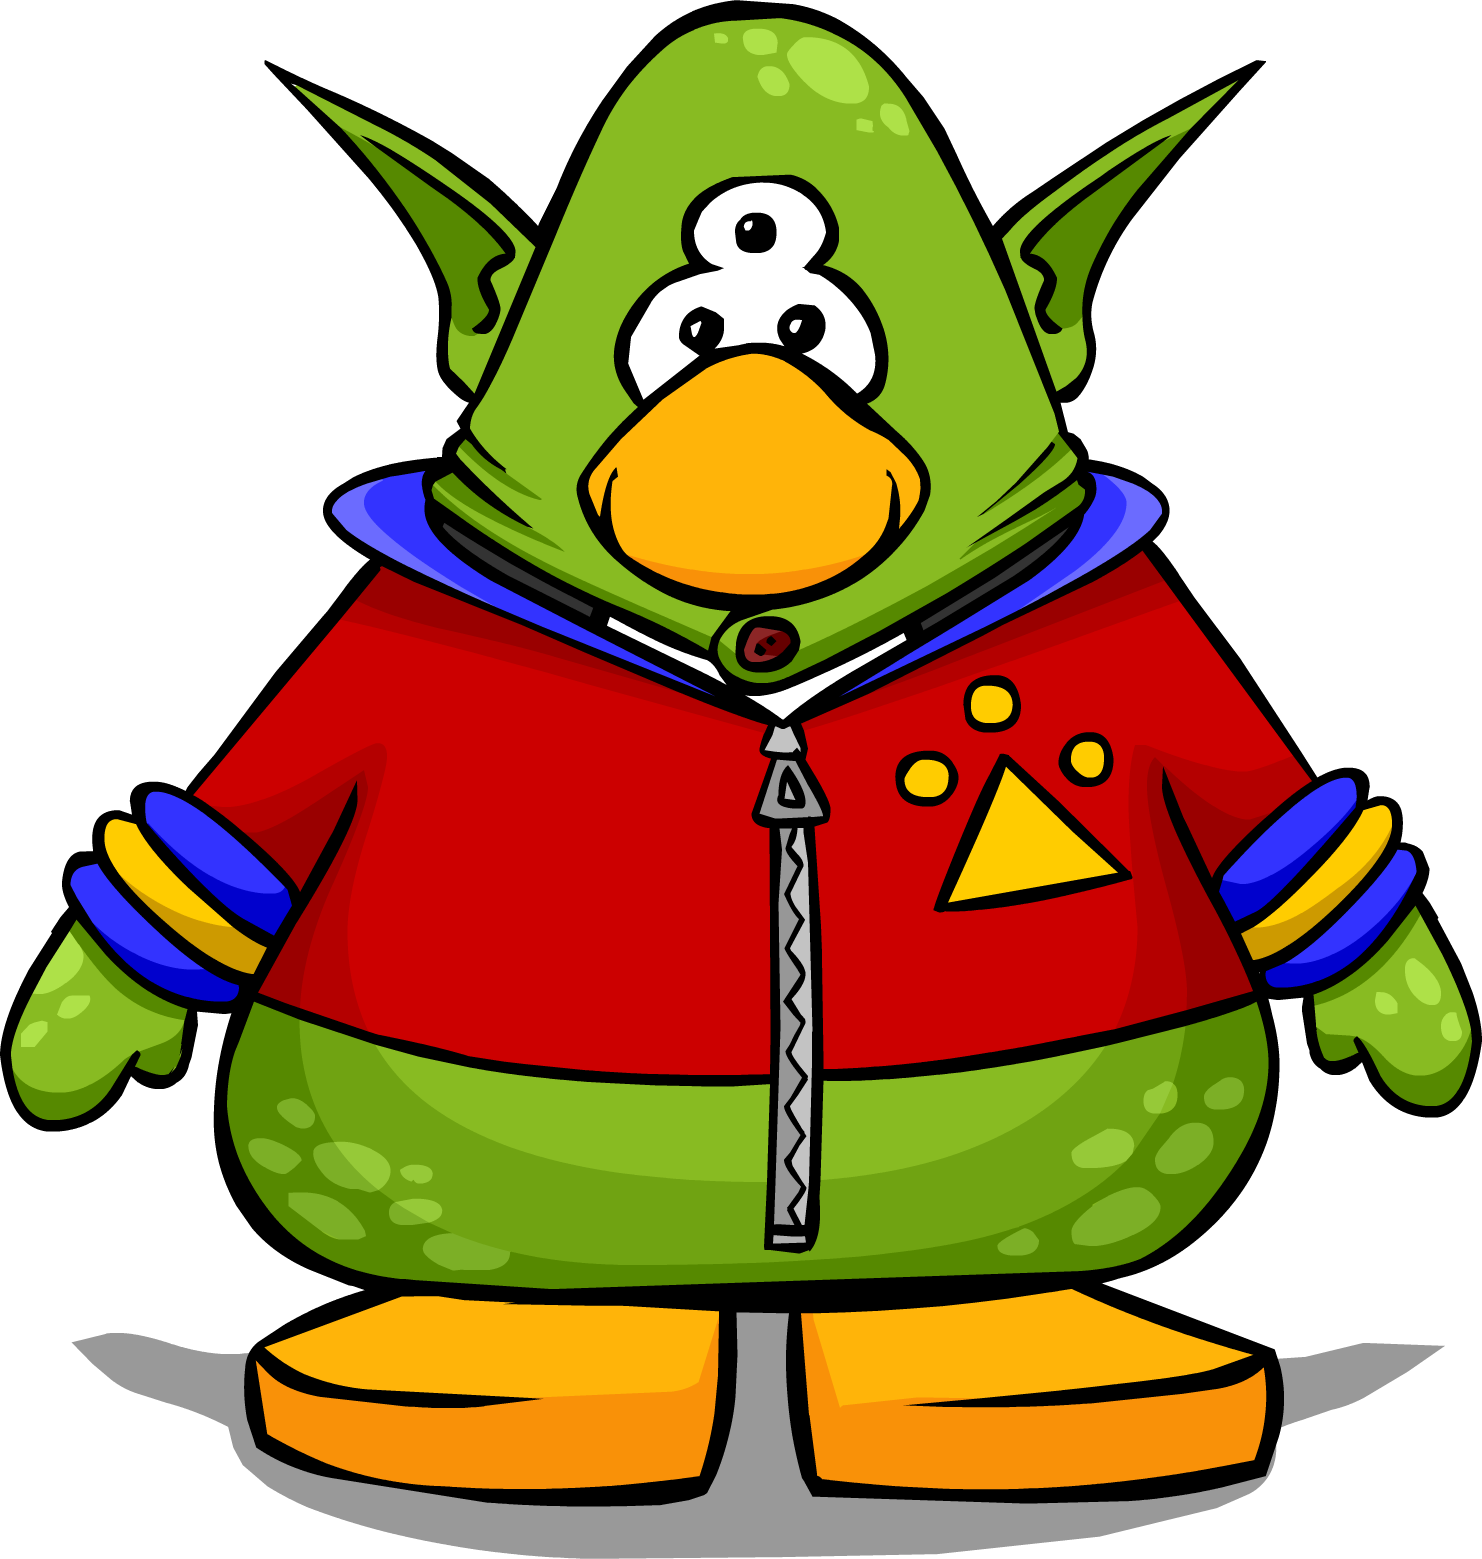 Image result for Aliens of club penguin""